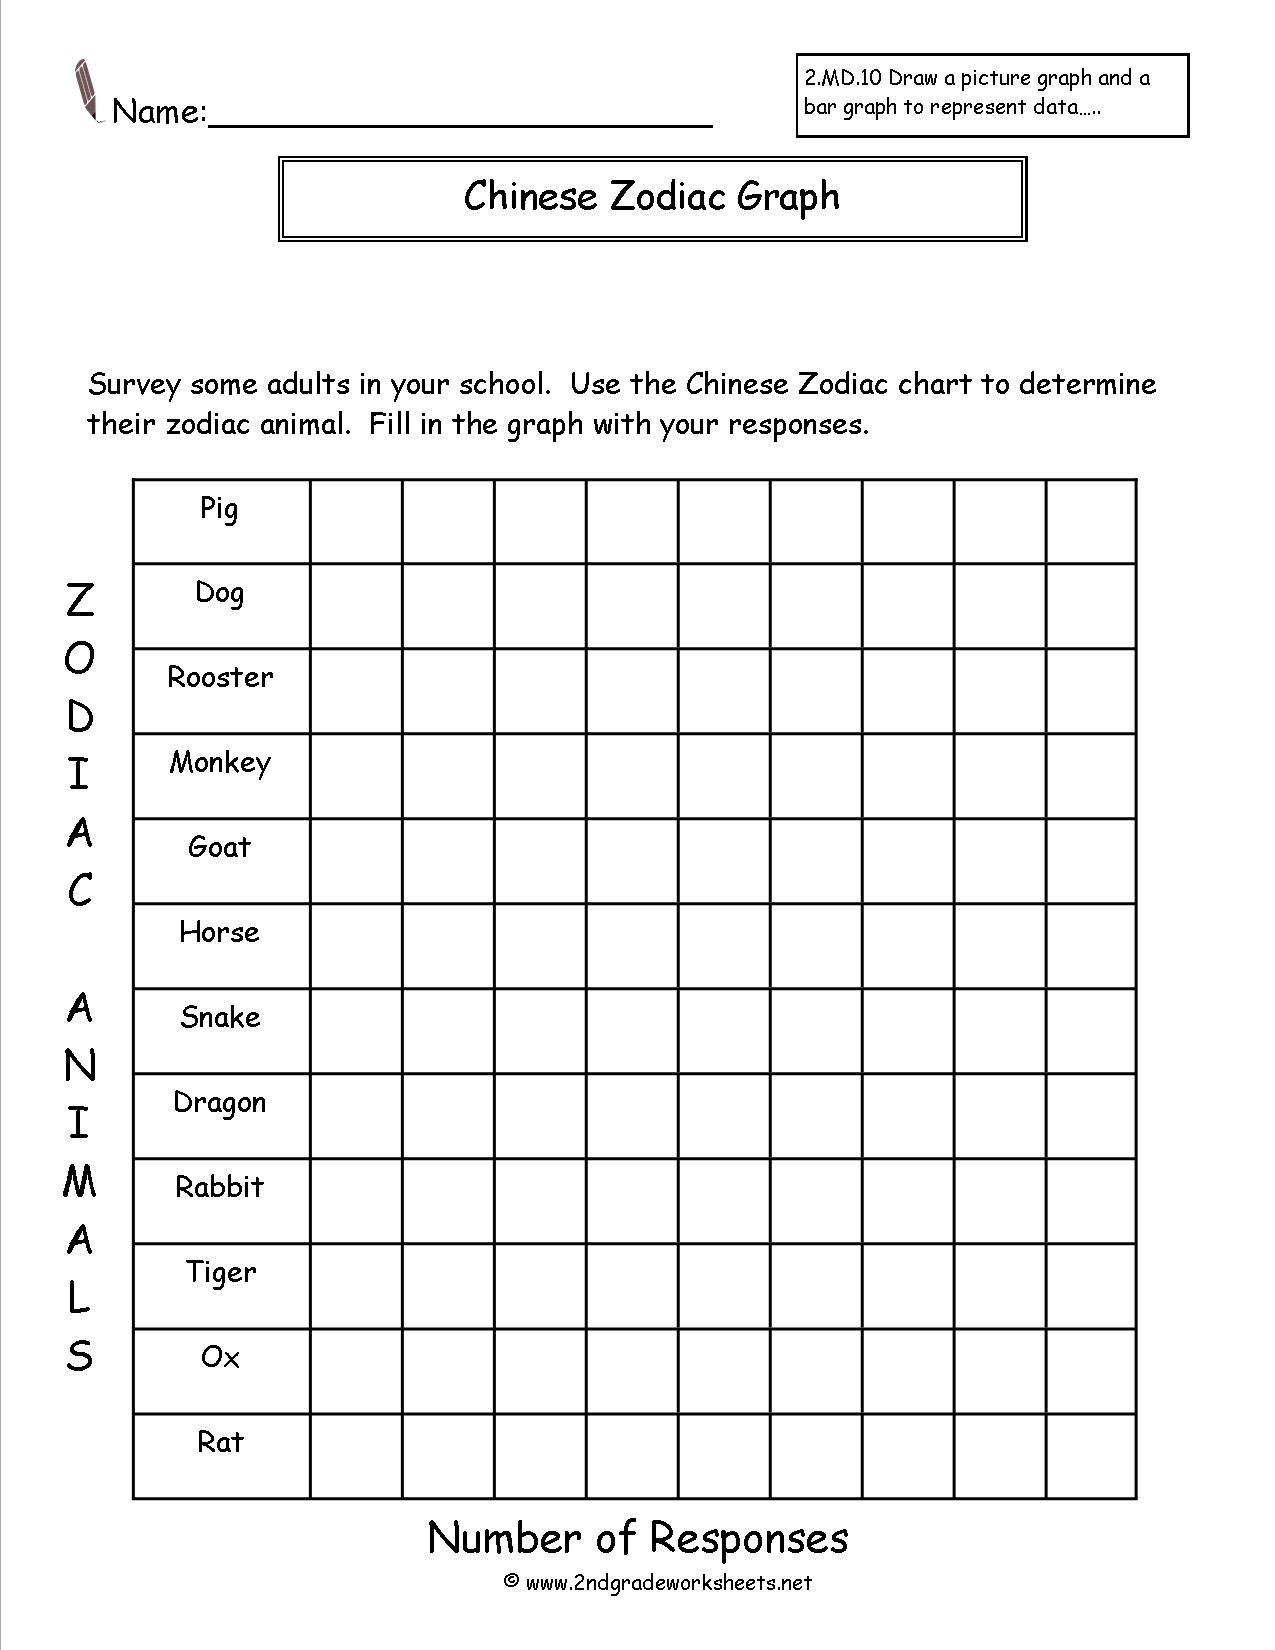 Free Reading And Creating Bar Graph Worksheets - Free Printable Bar Graph Worksheets For 2Nd Grade